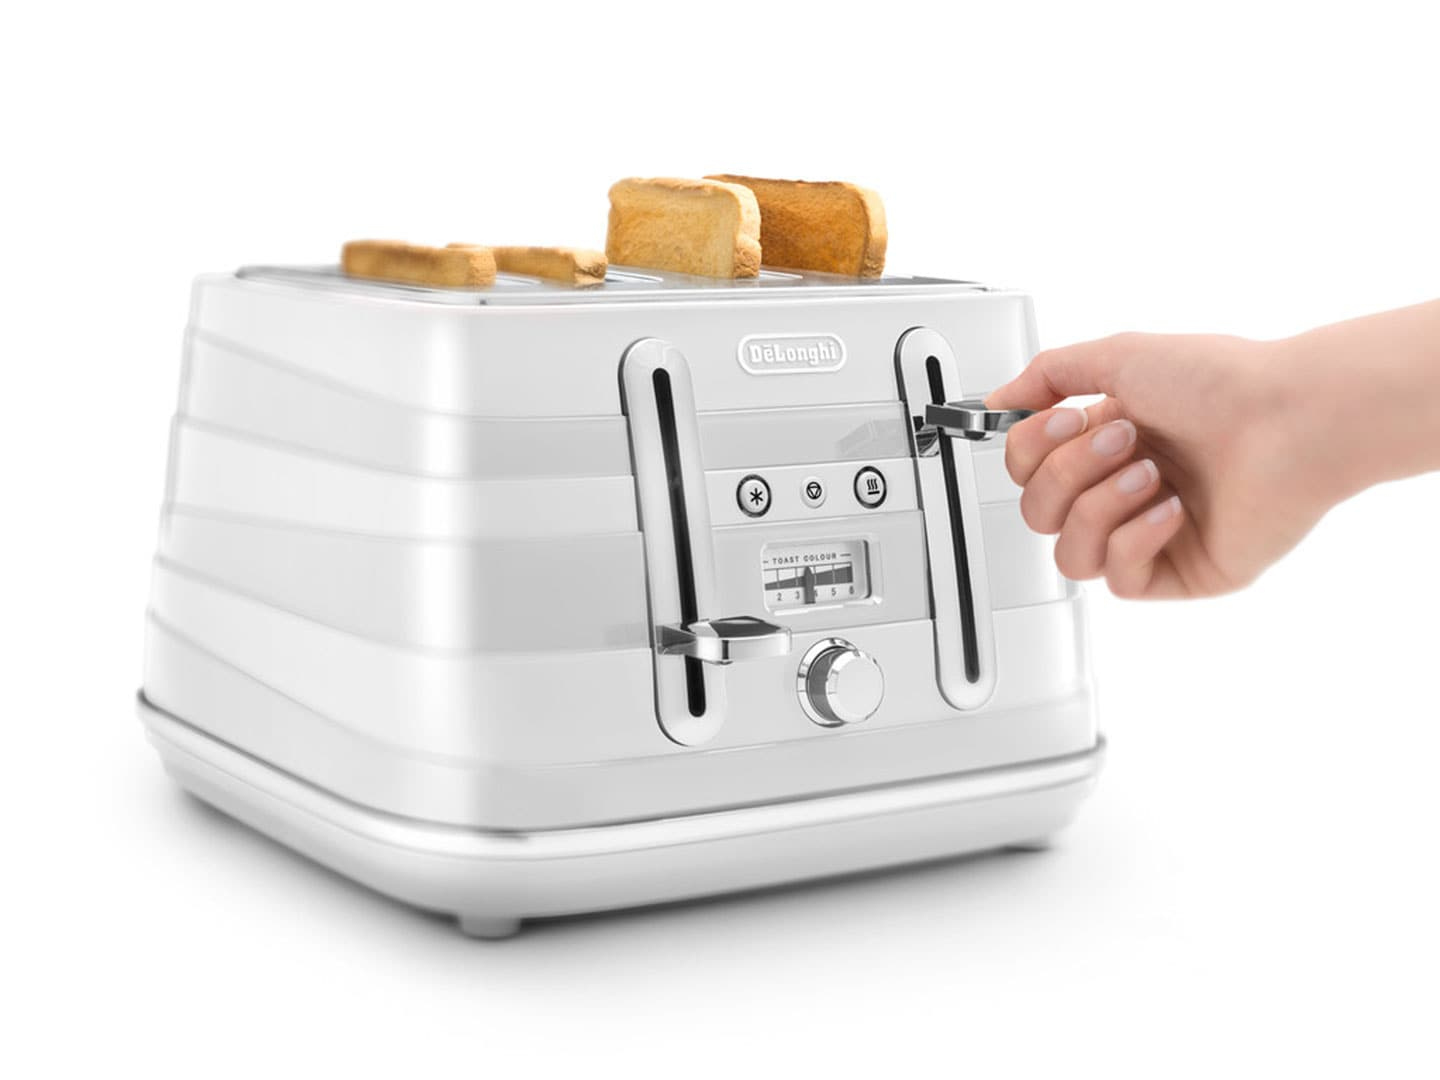 Clearance Stock: Avvolta 4 Slice Toaster - White - CTA 4003.W